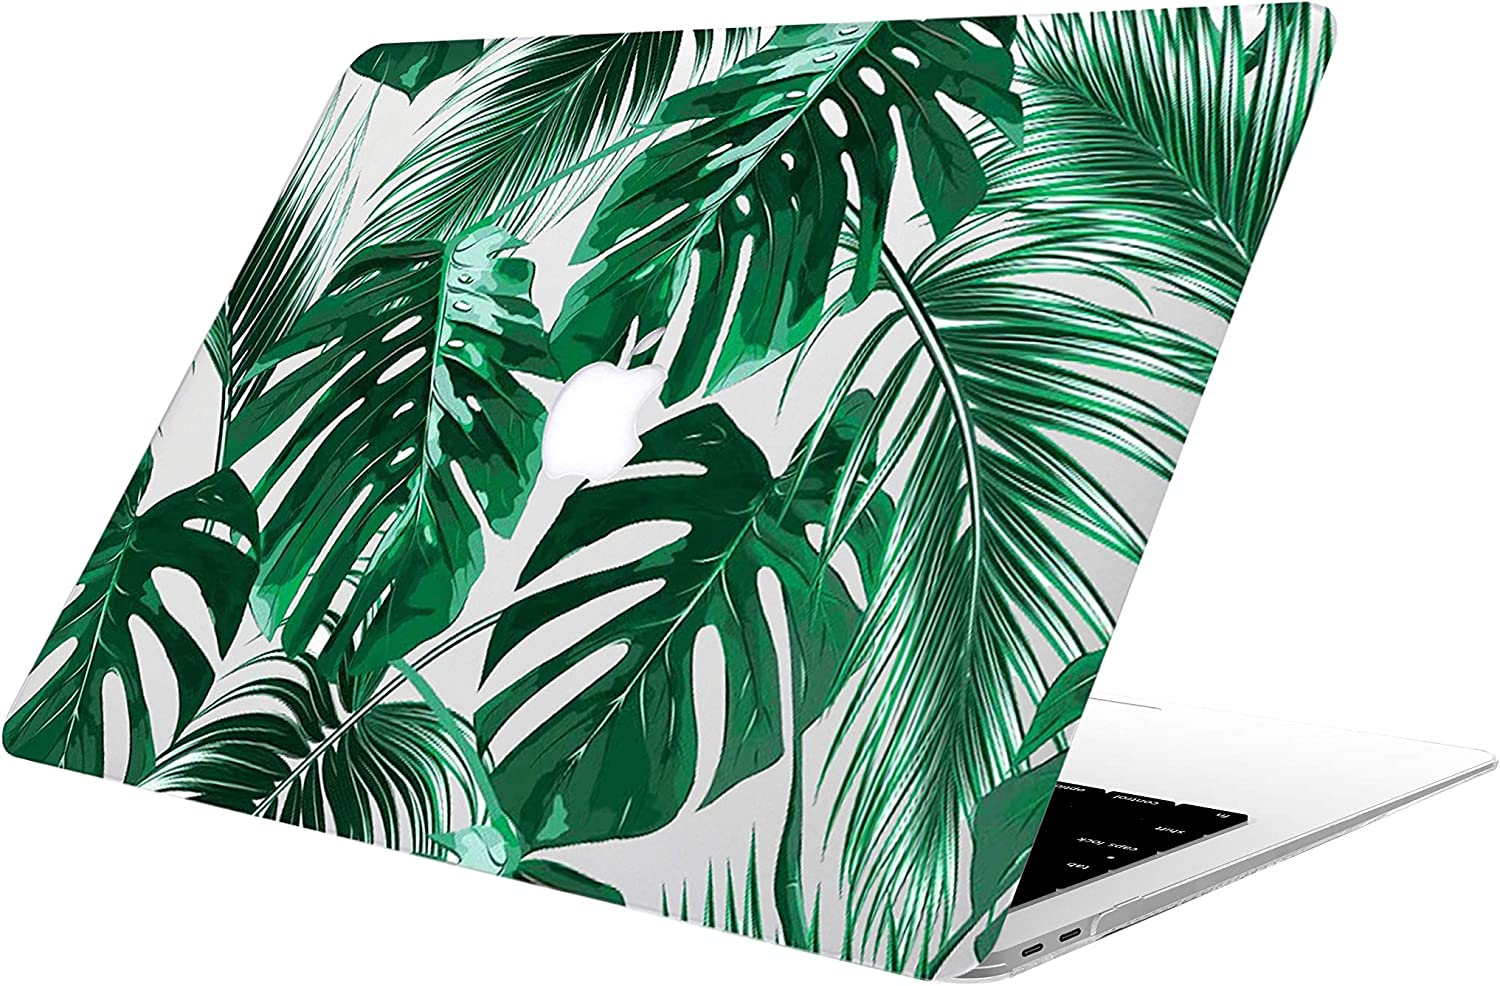 AOGGY MacBook Air 13 Case Model: A1369/A1466 (2017-2010 Version) - Protective Hard Case, Soft Touch Plastic Rubber Coated Shell Cover for MacBook Air 13 - Tropical Palms Leaves 09